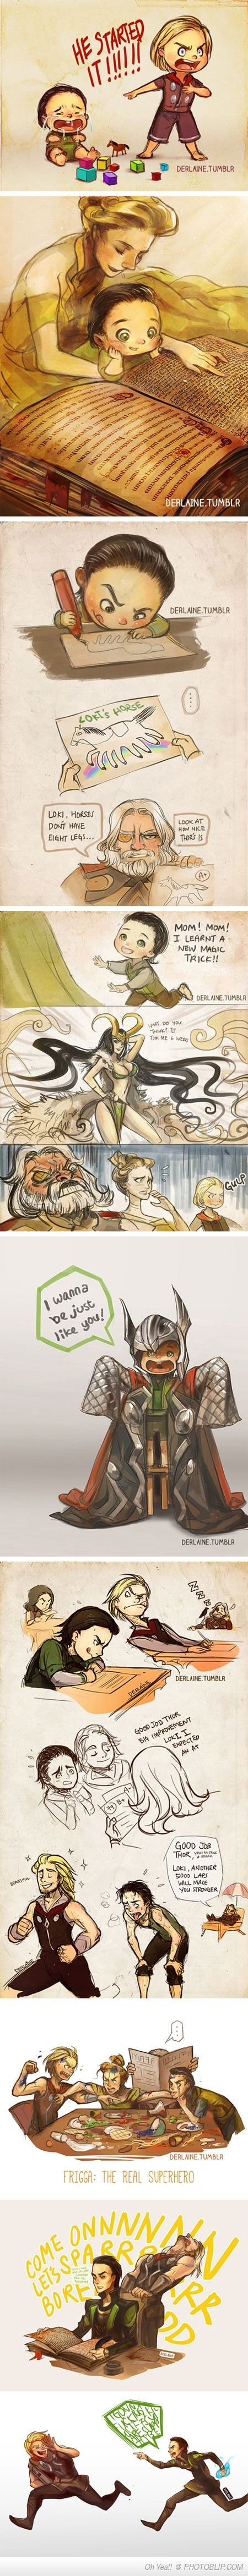 Loki's Childhood By Derlaine- I will never get enogh of baby loki and thor.------ this is the best mohdst deppresing post I have ever seen on this website.: